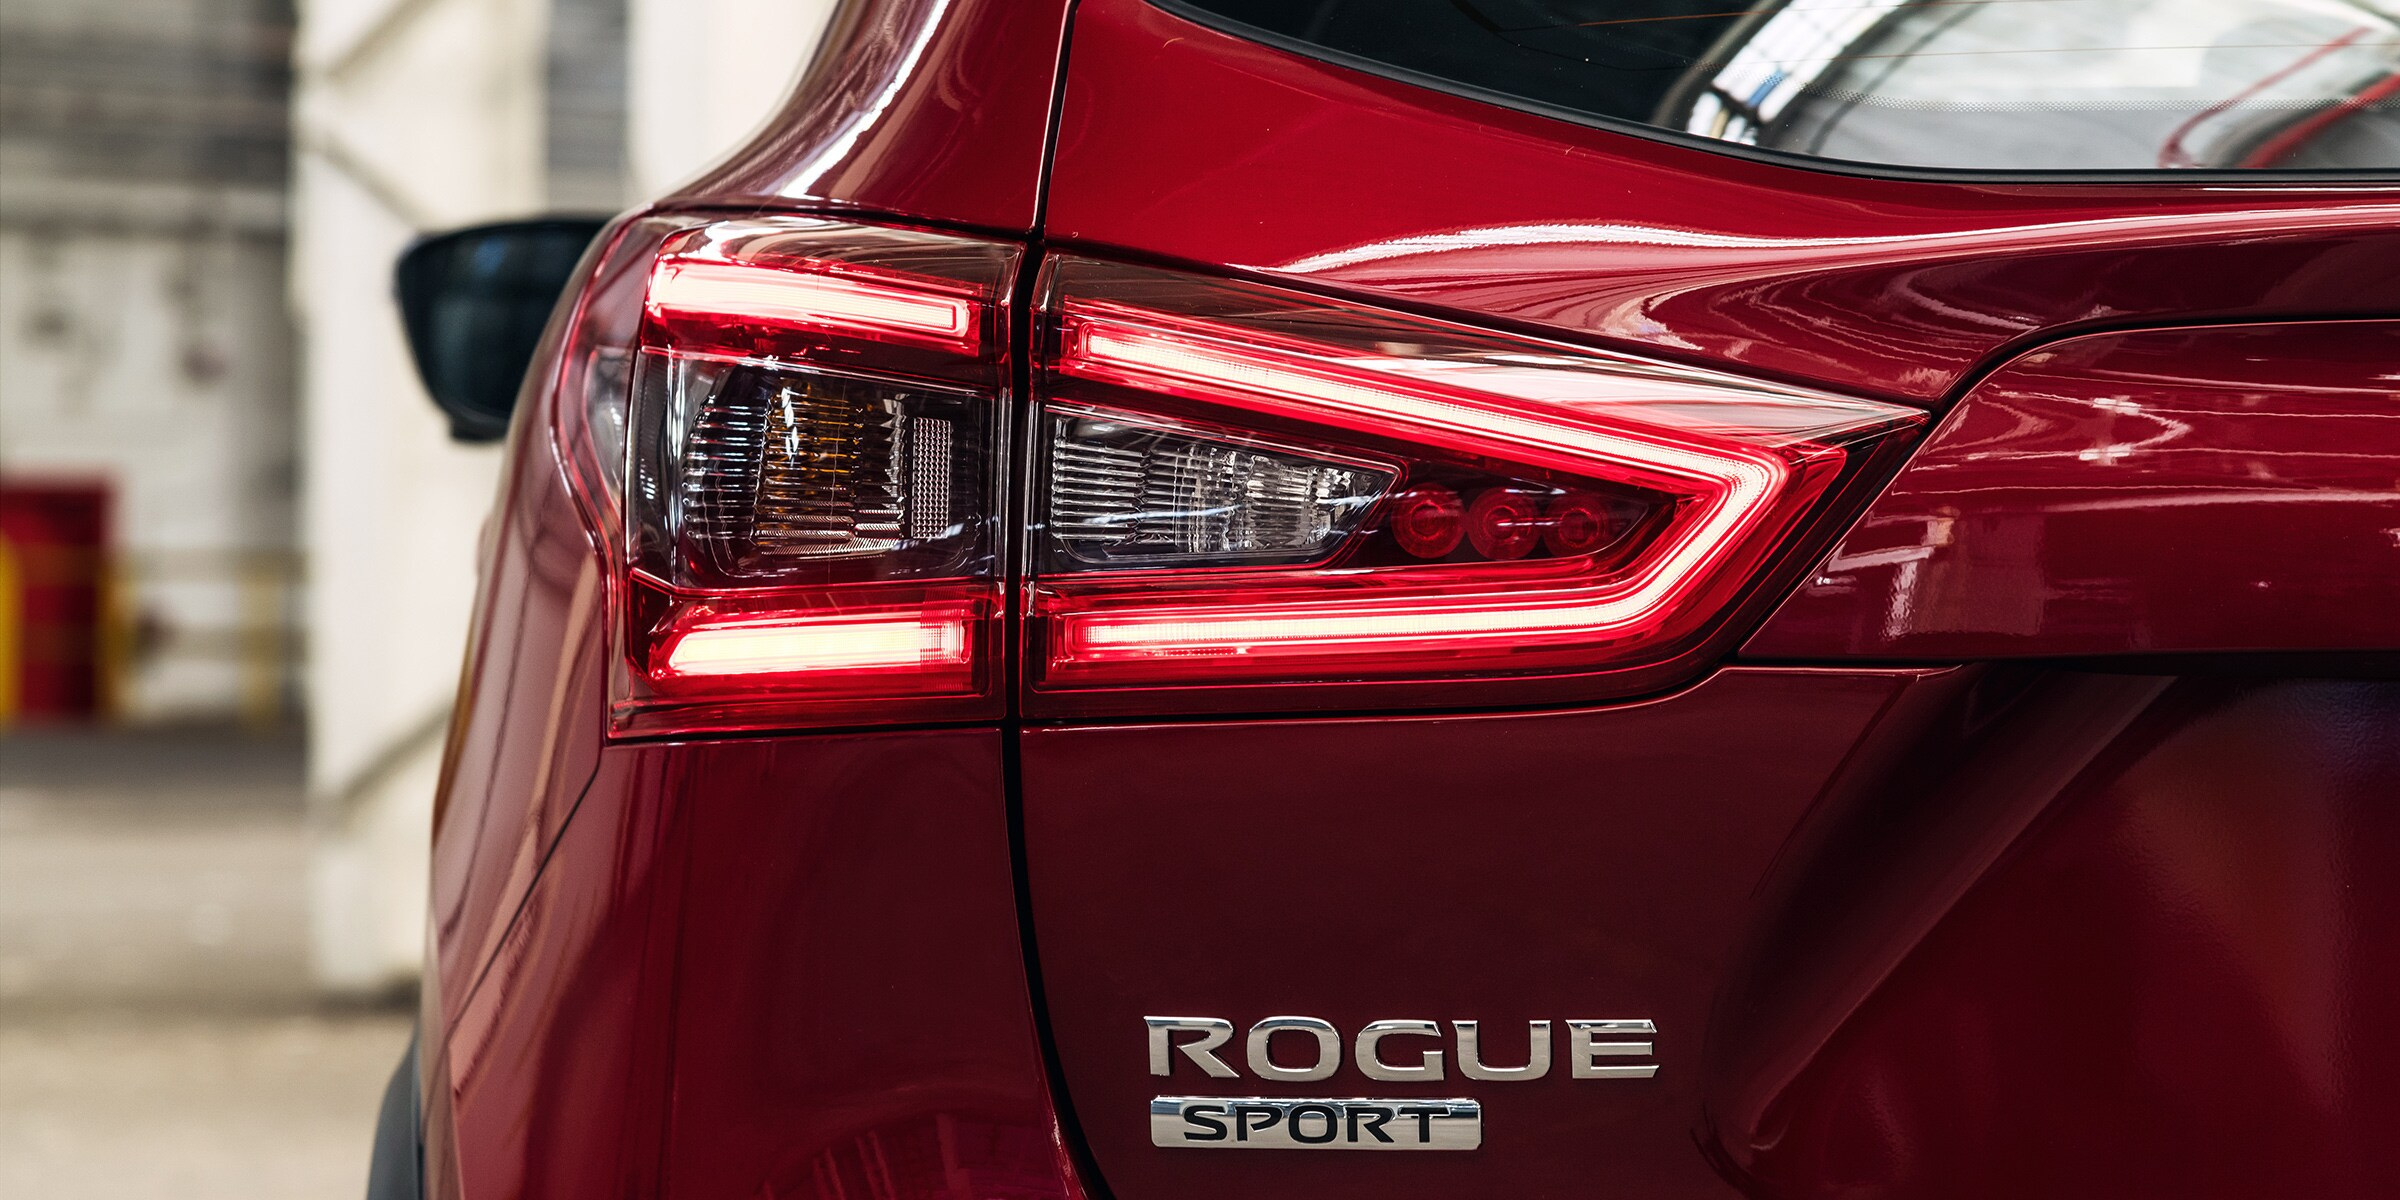 Sharp Detailing on the 2020 Rogue Sport